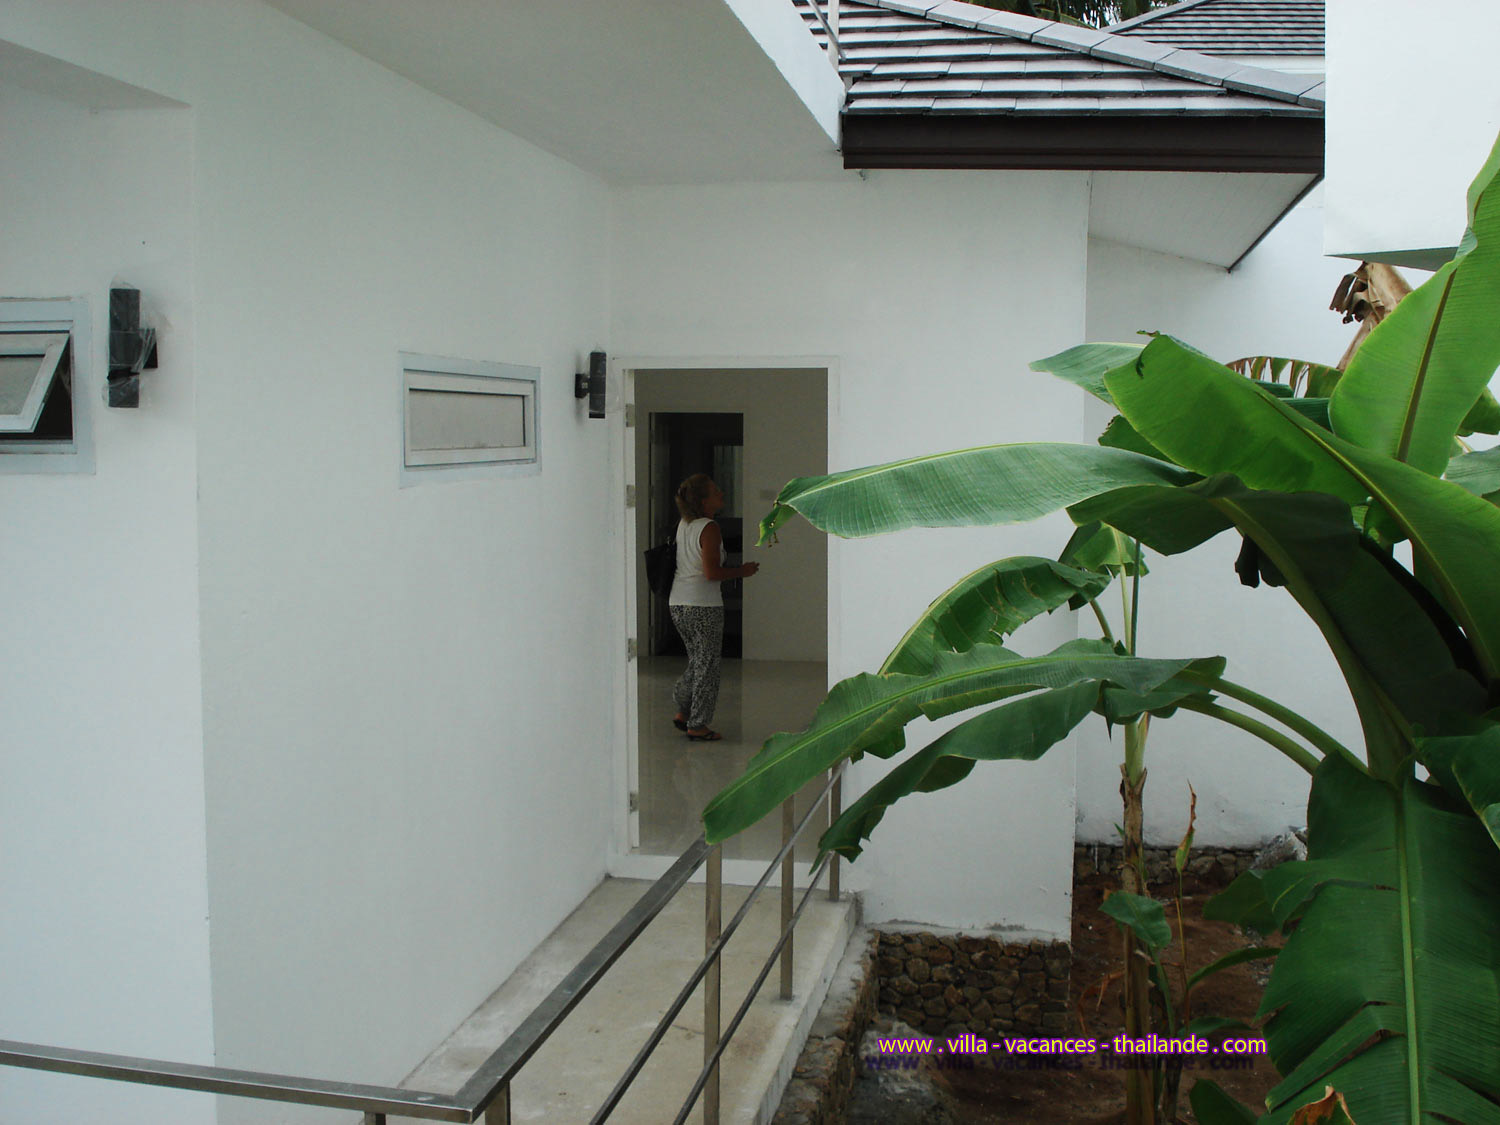 photo 4 English holiday villa rental thailand entry home-chaweng Koh Samui for 4 people 5 people 6 people